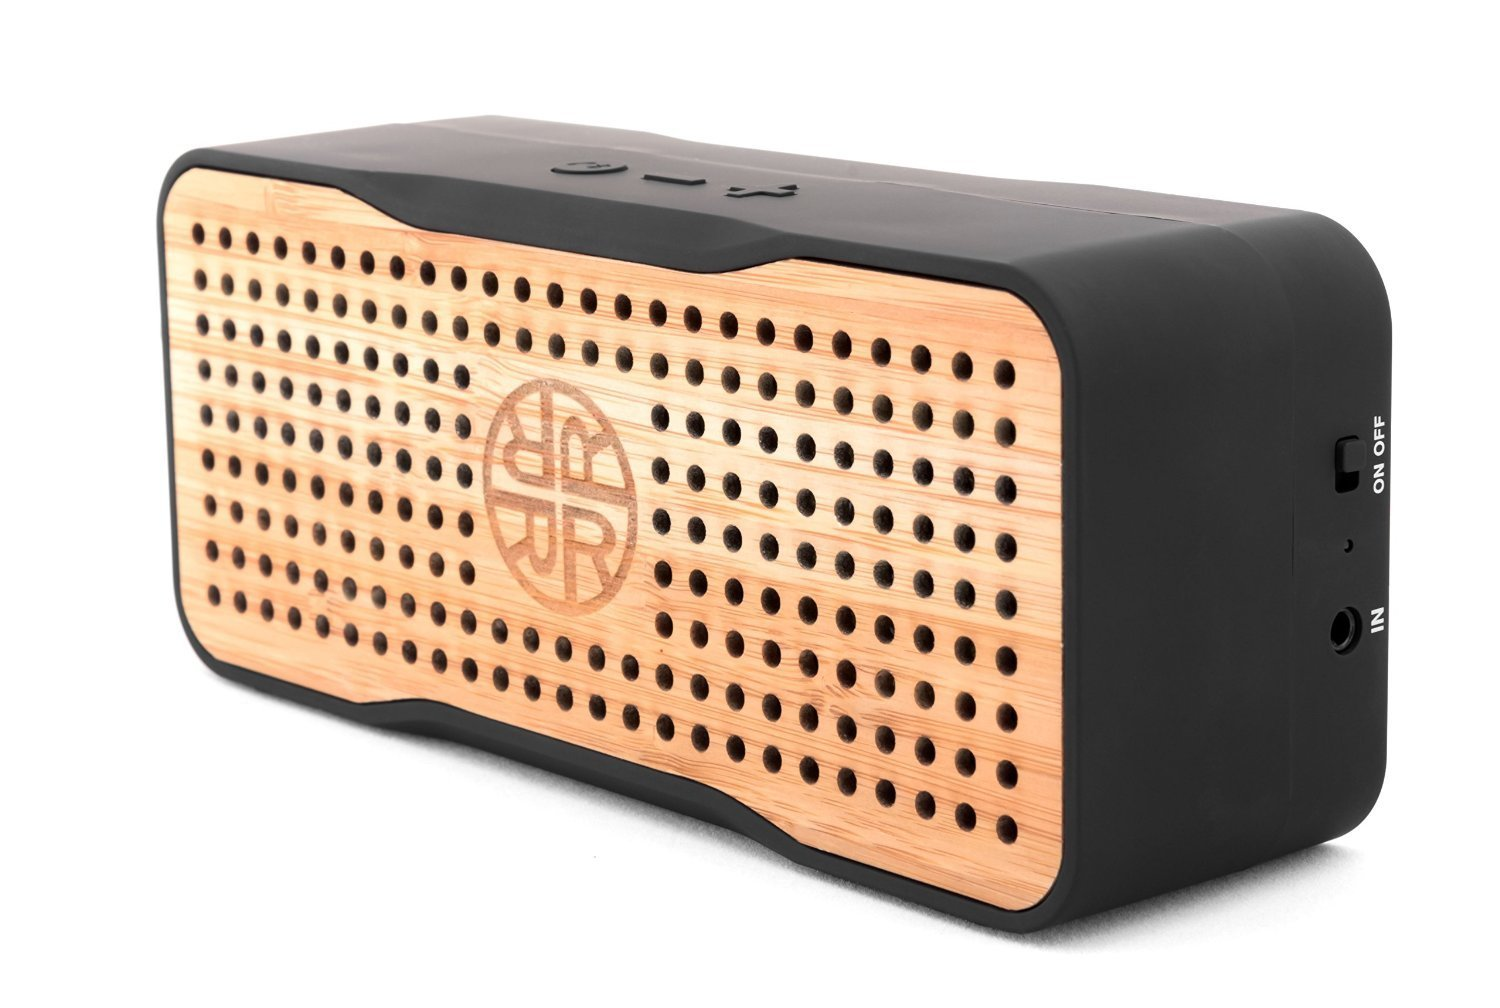 Solar Speaker, Portable Wireless Bluetooth Bamboo Speaker & Phone Charger by REVEAL - Eco-friendly Bamboo Wood Design by Reveal